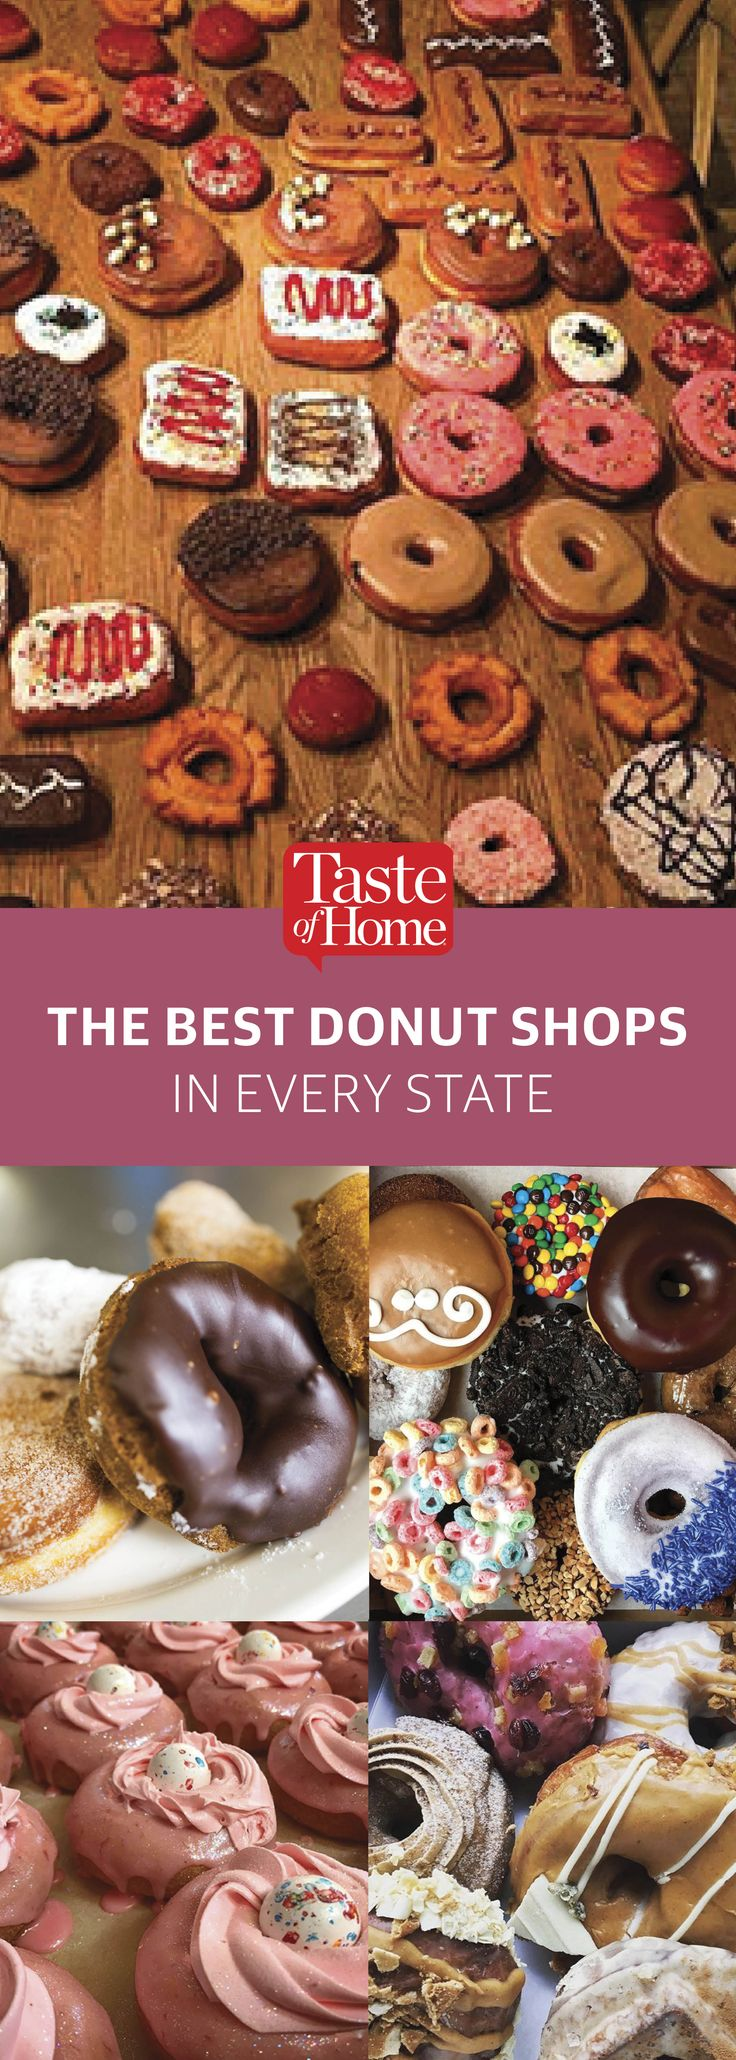 The Best Donut Shops in Every State